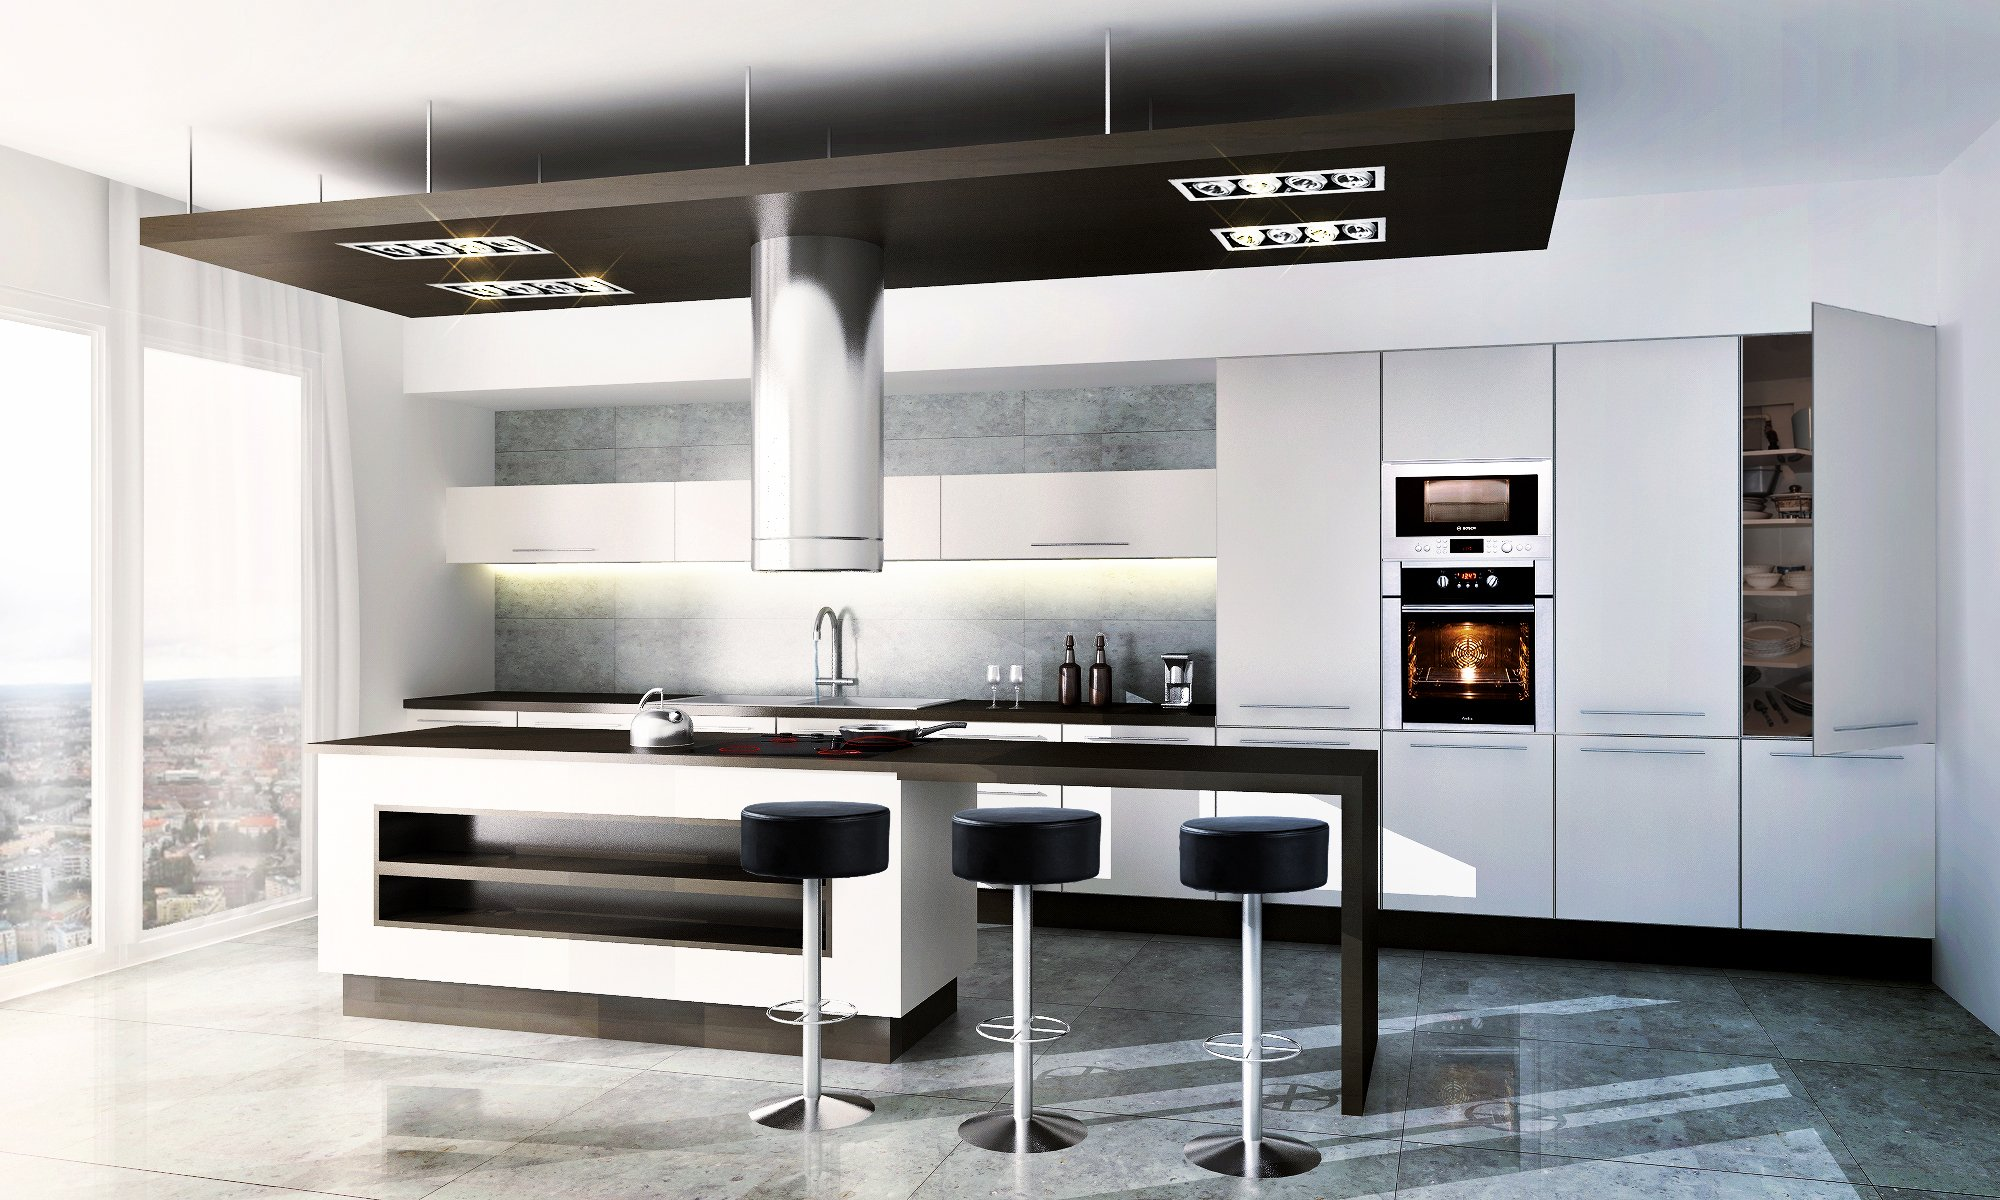 Modern kitchen vizblog free 3d models free 3d base for Kitchen modeler